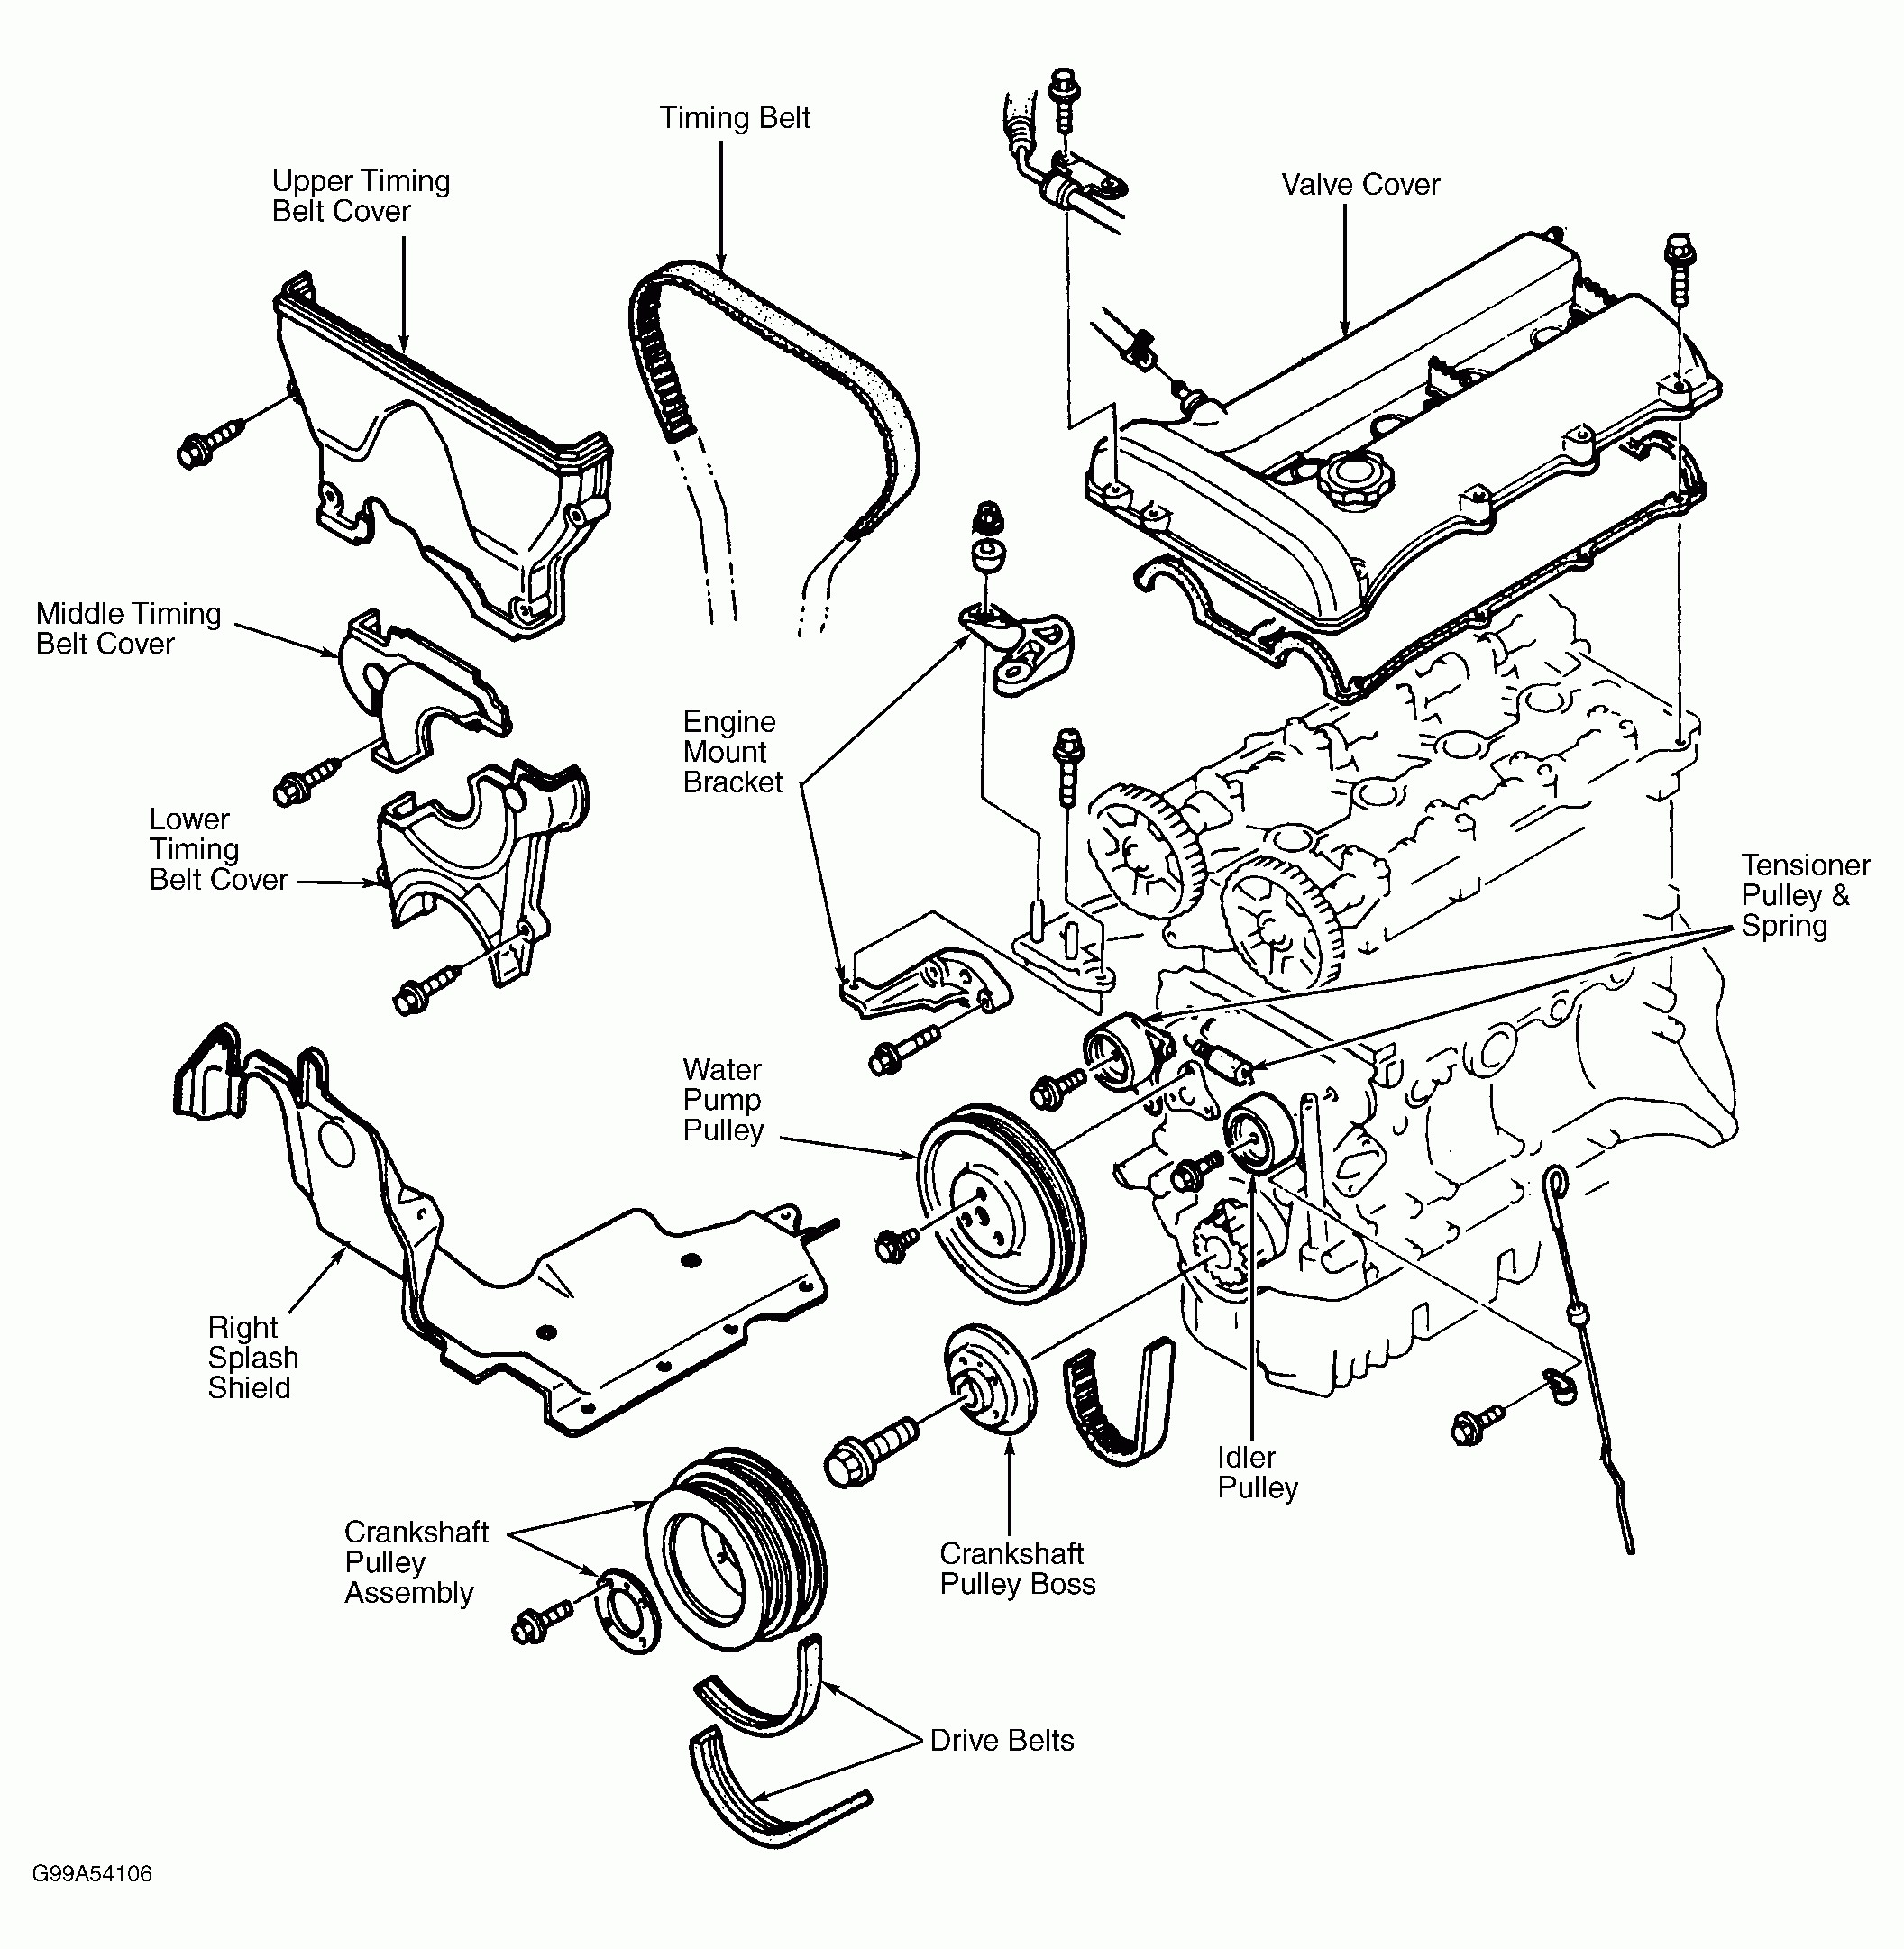 2002 Mazda Protege Engine Diagram Wiring Diagrams Schematics B4000 Fuse 1999 Simple Rh David Huggett Co Uk Belt Ac